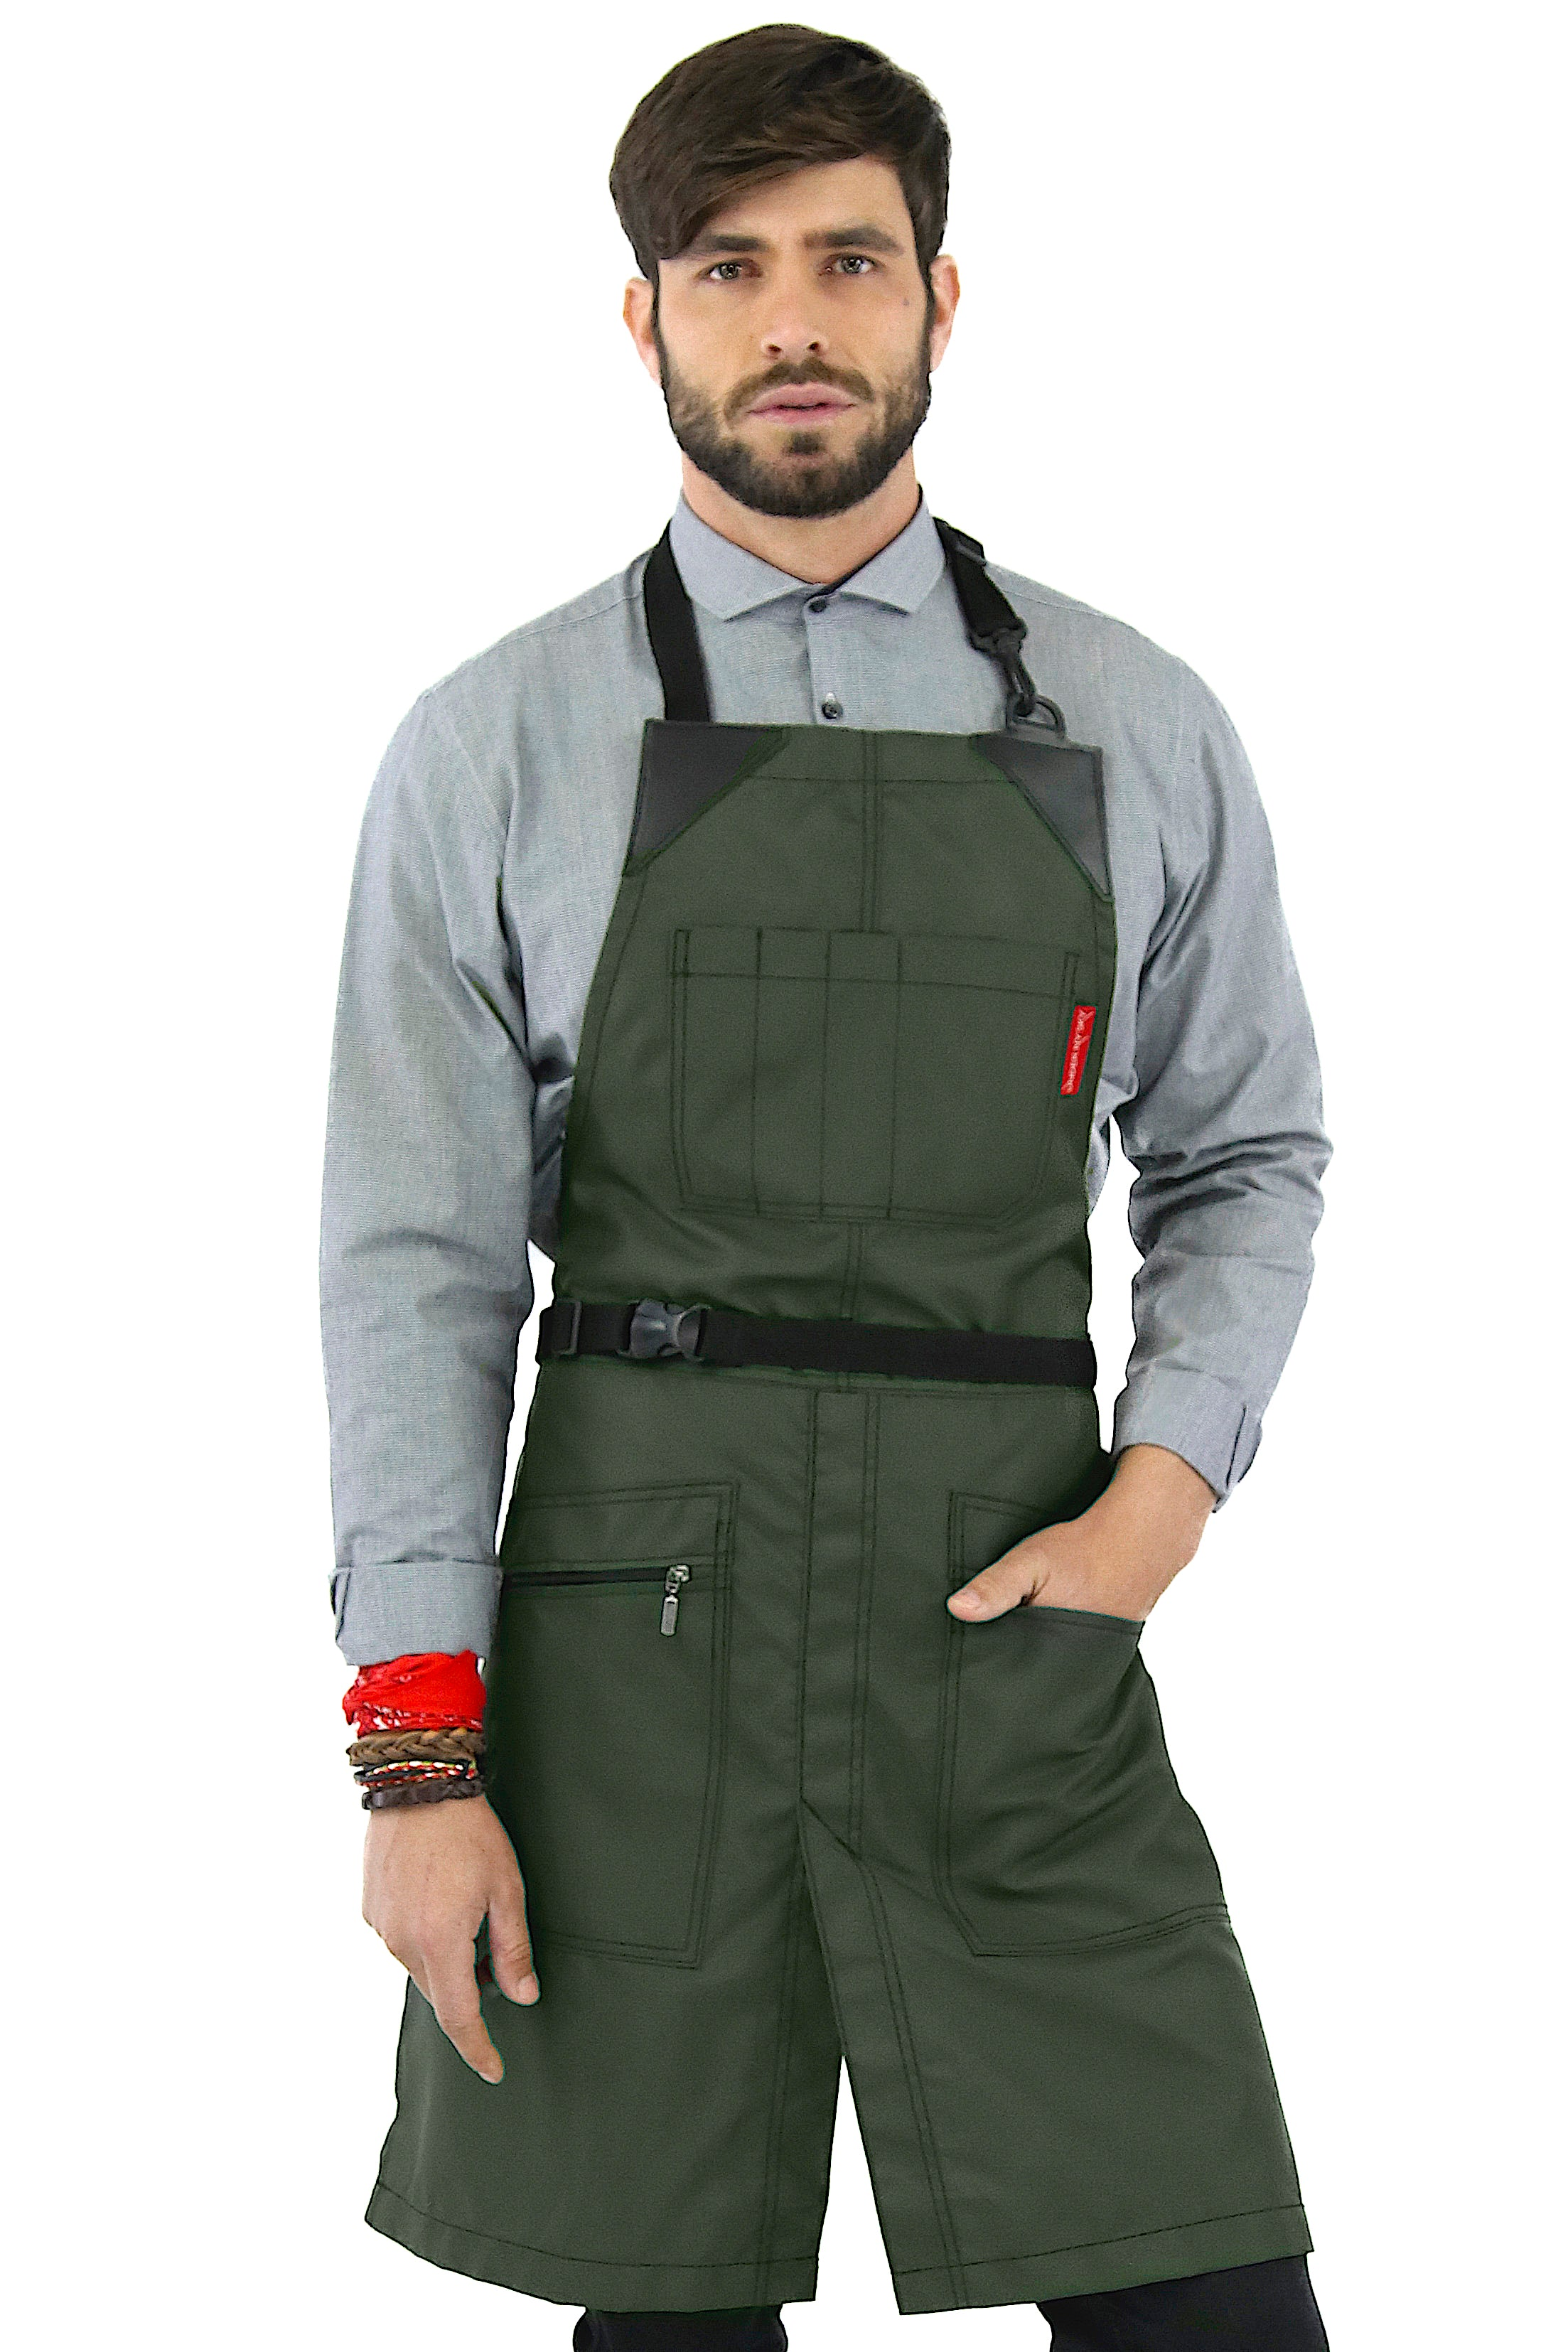 Barber Chemical Waterproof No-Tie Apron - Green Oxford Canvas